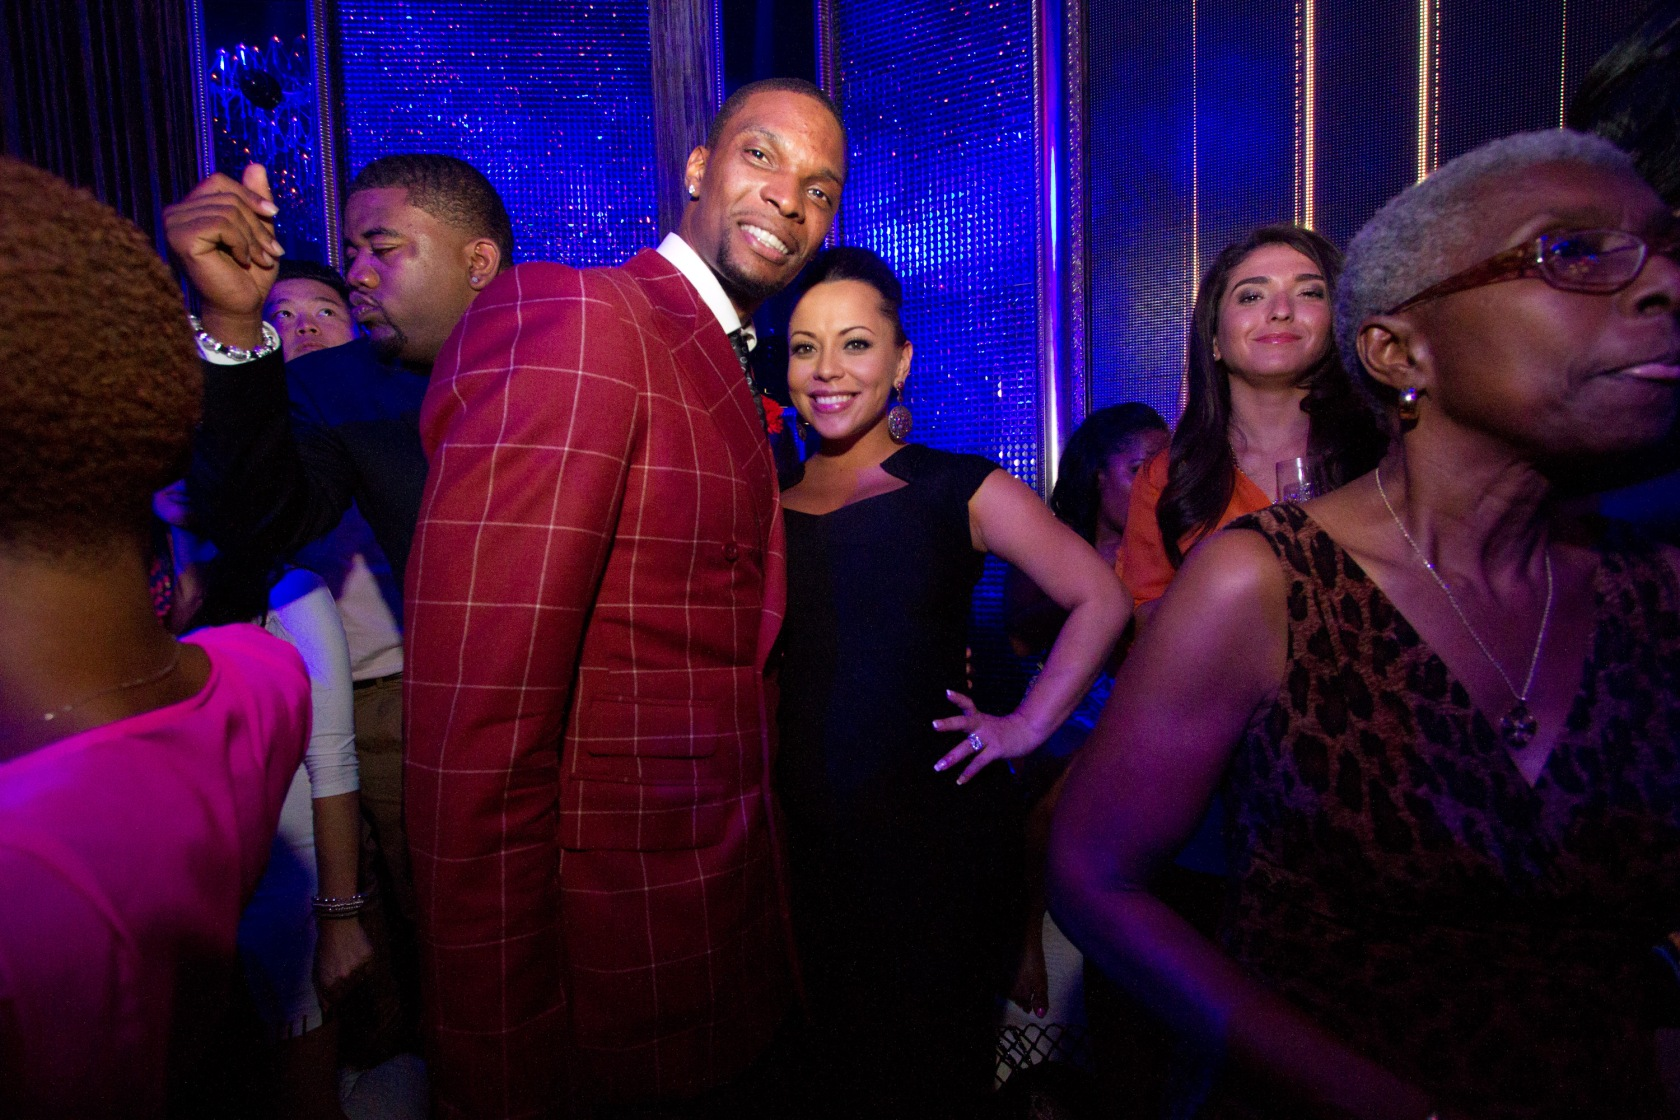 Ocean Drive Presents Chris Bosh's 28th Birthday Grey Goose Noir After Party